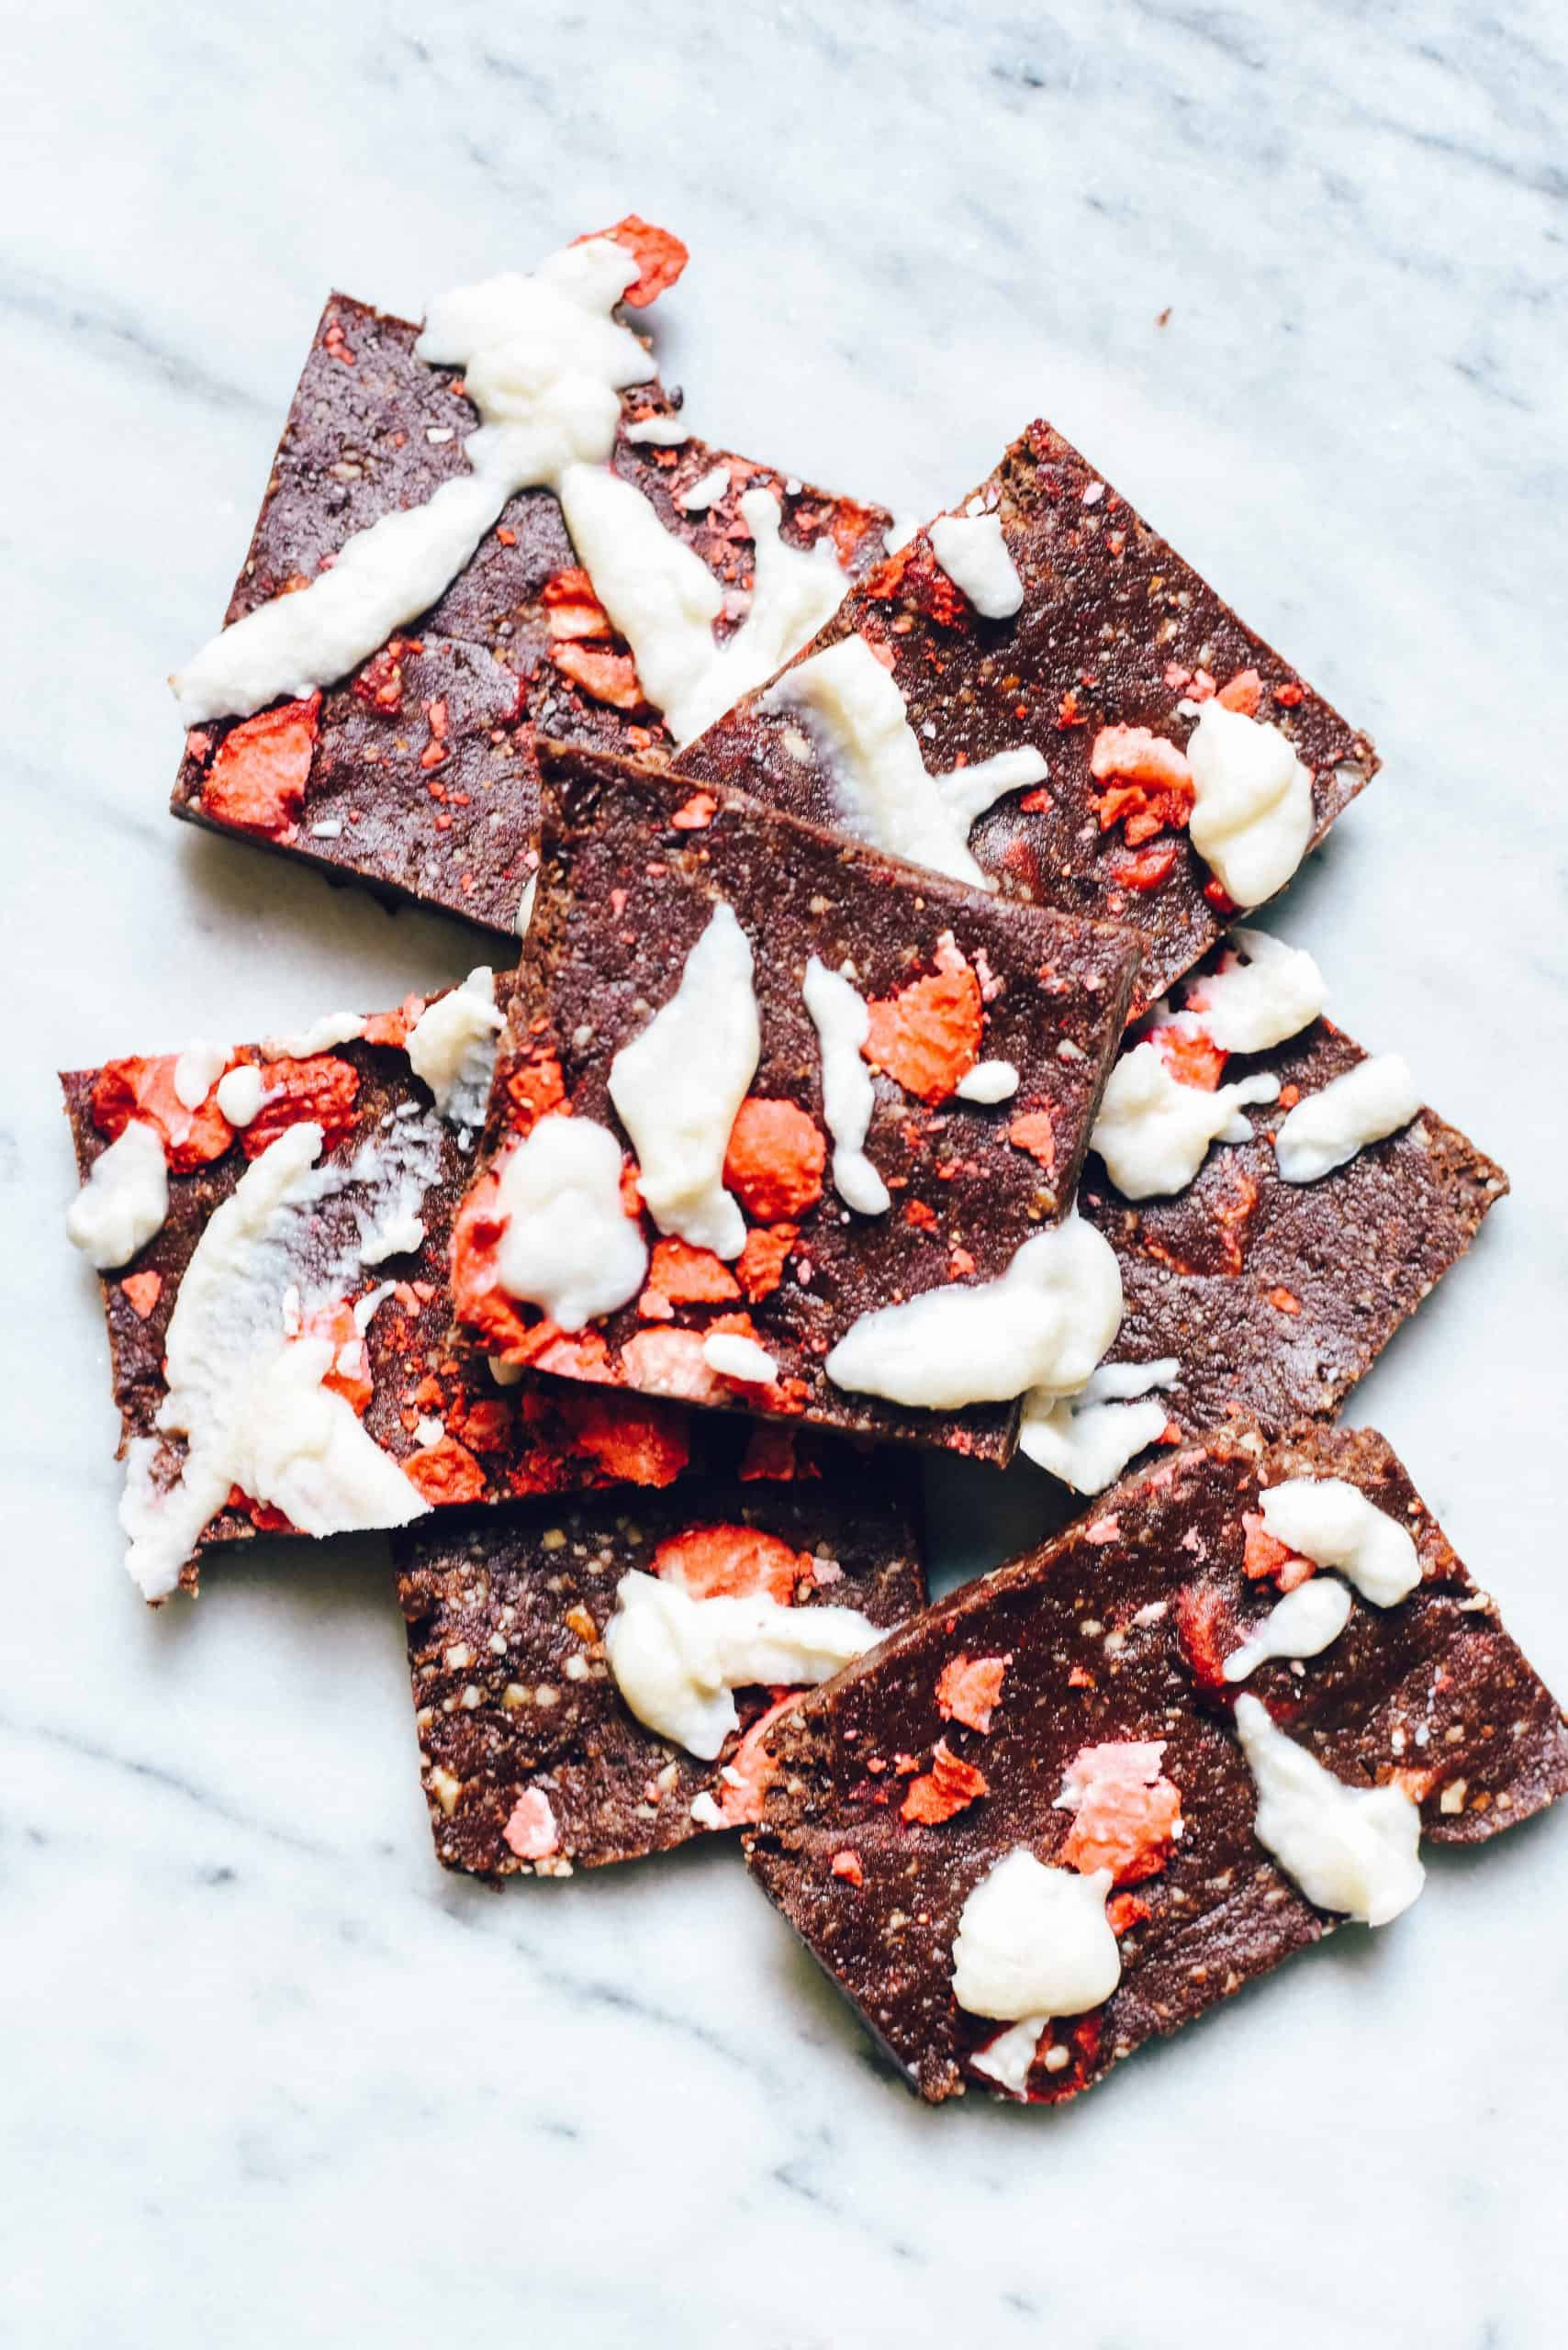 Strawberries & Cream Chocolate Chaga Bars